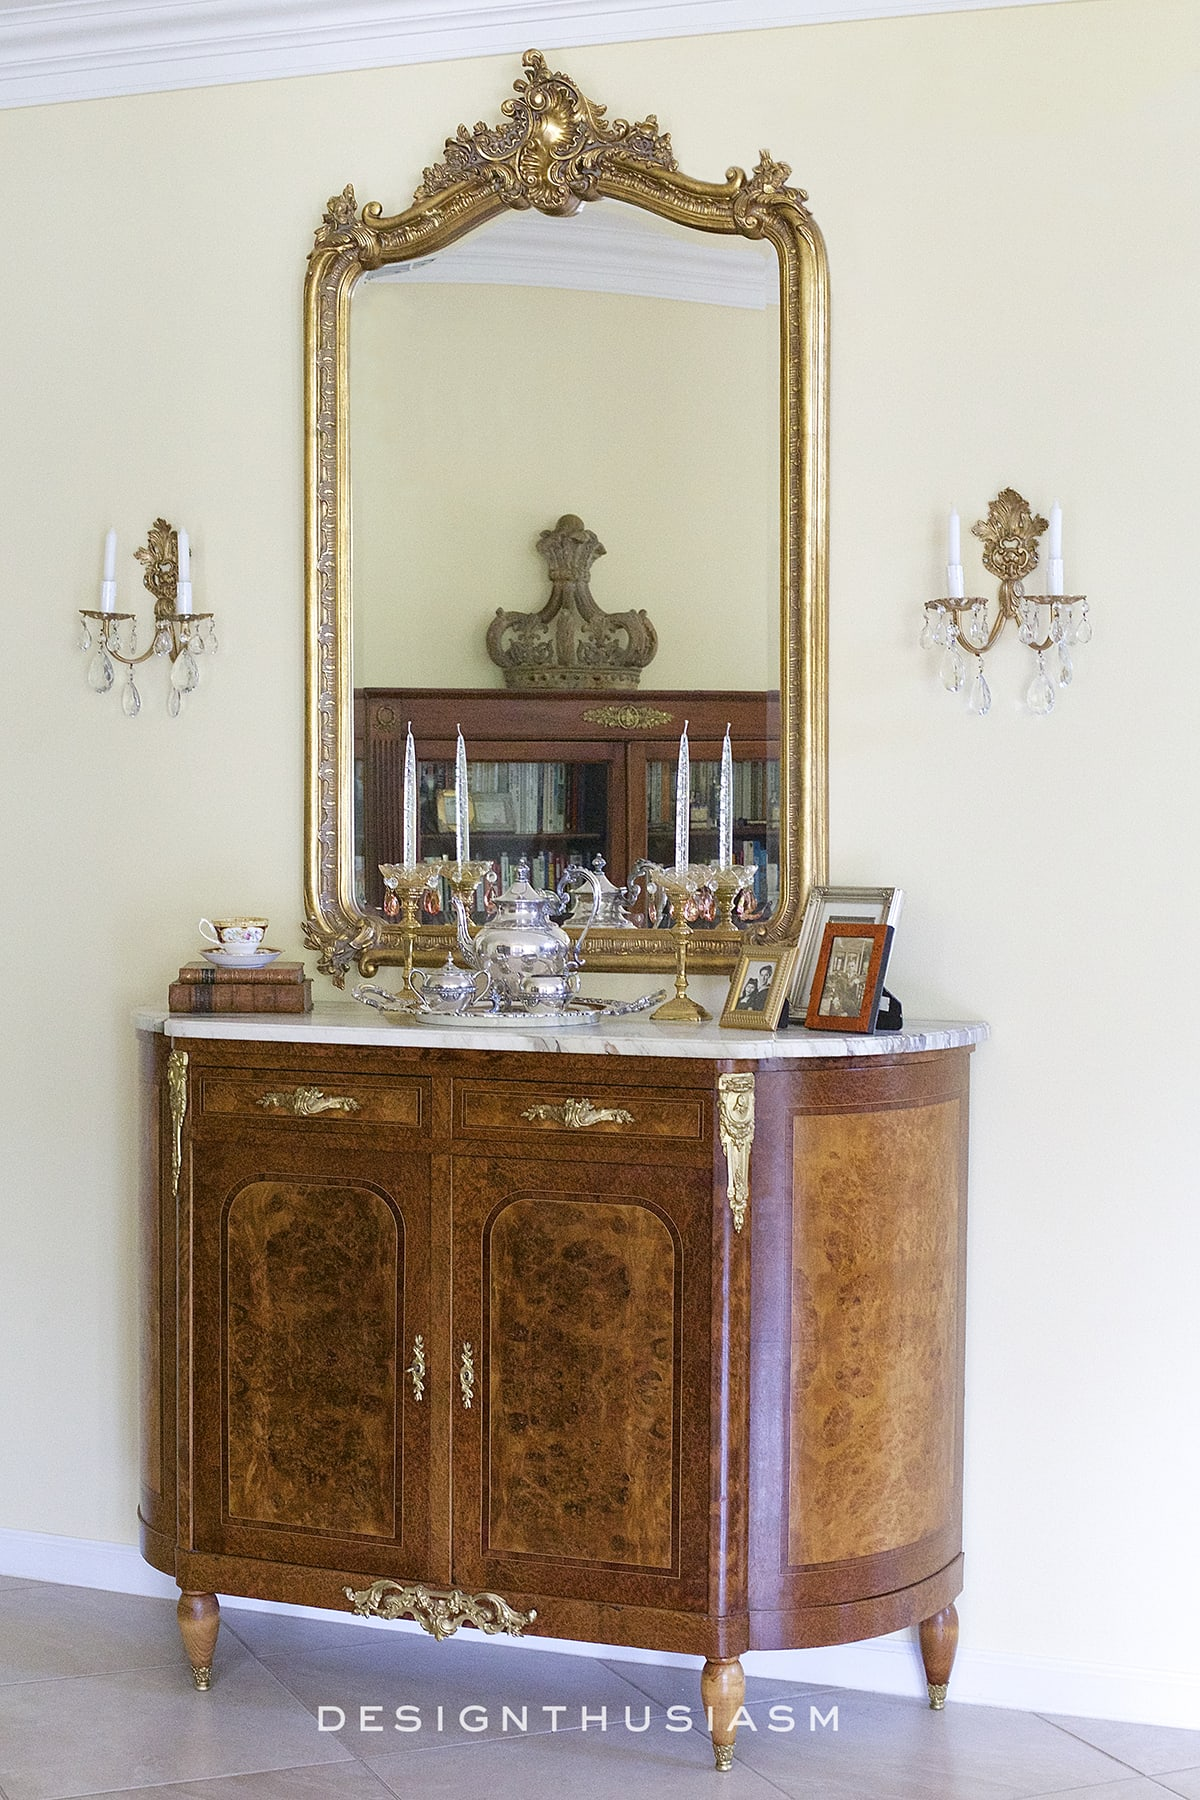 gold mirrors in the entryway create a elegant french country feel